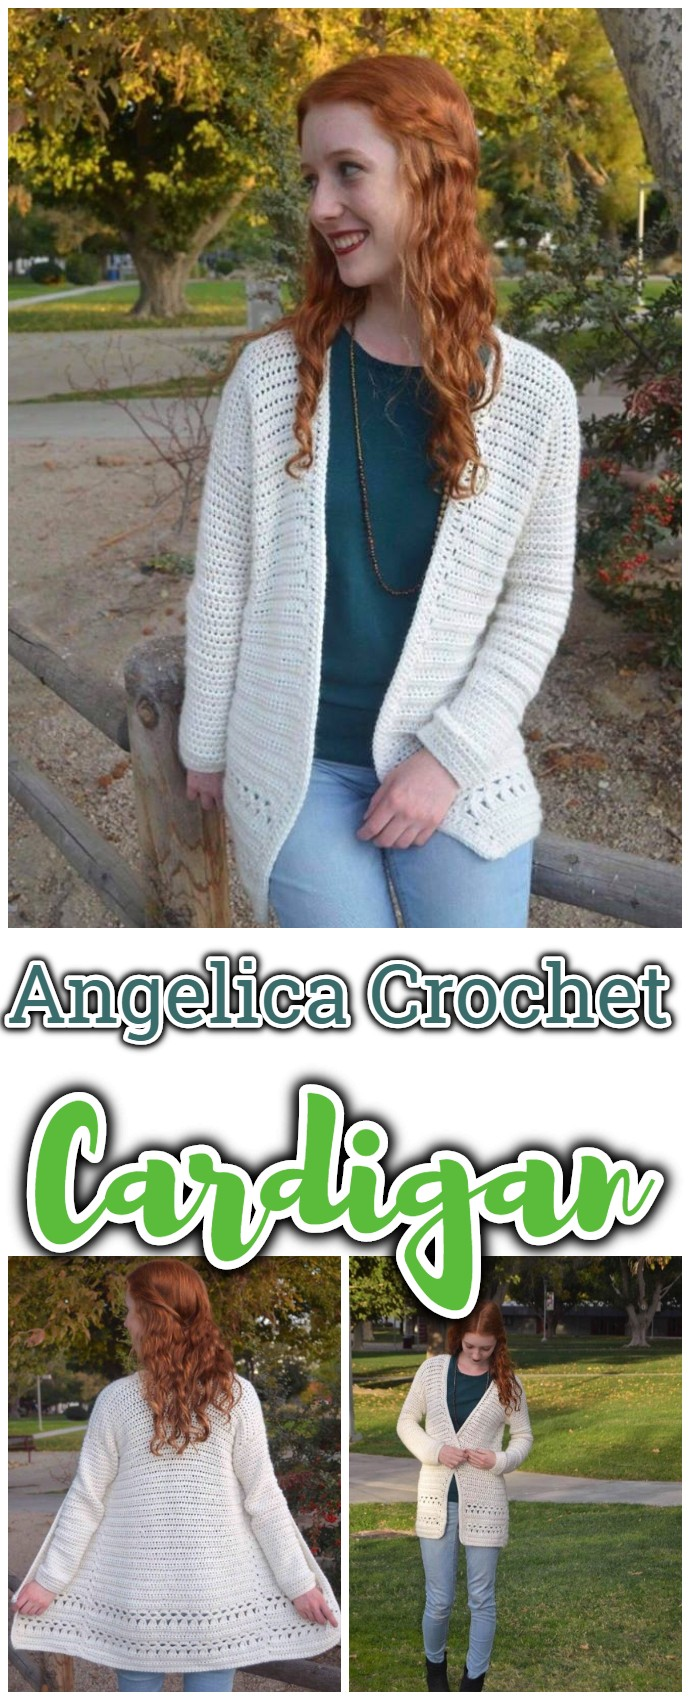 Angelica Crochet Cardigan